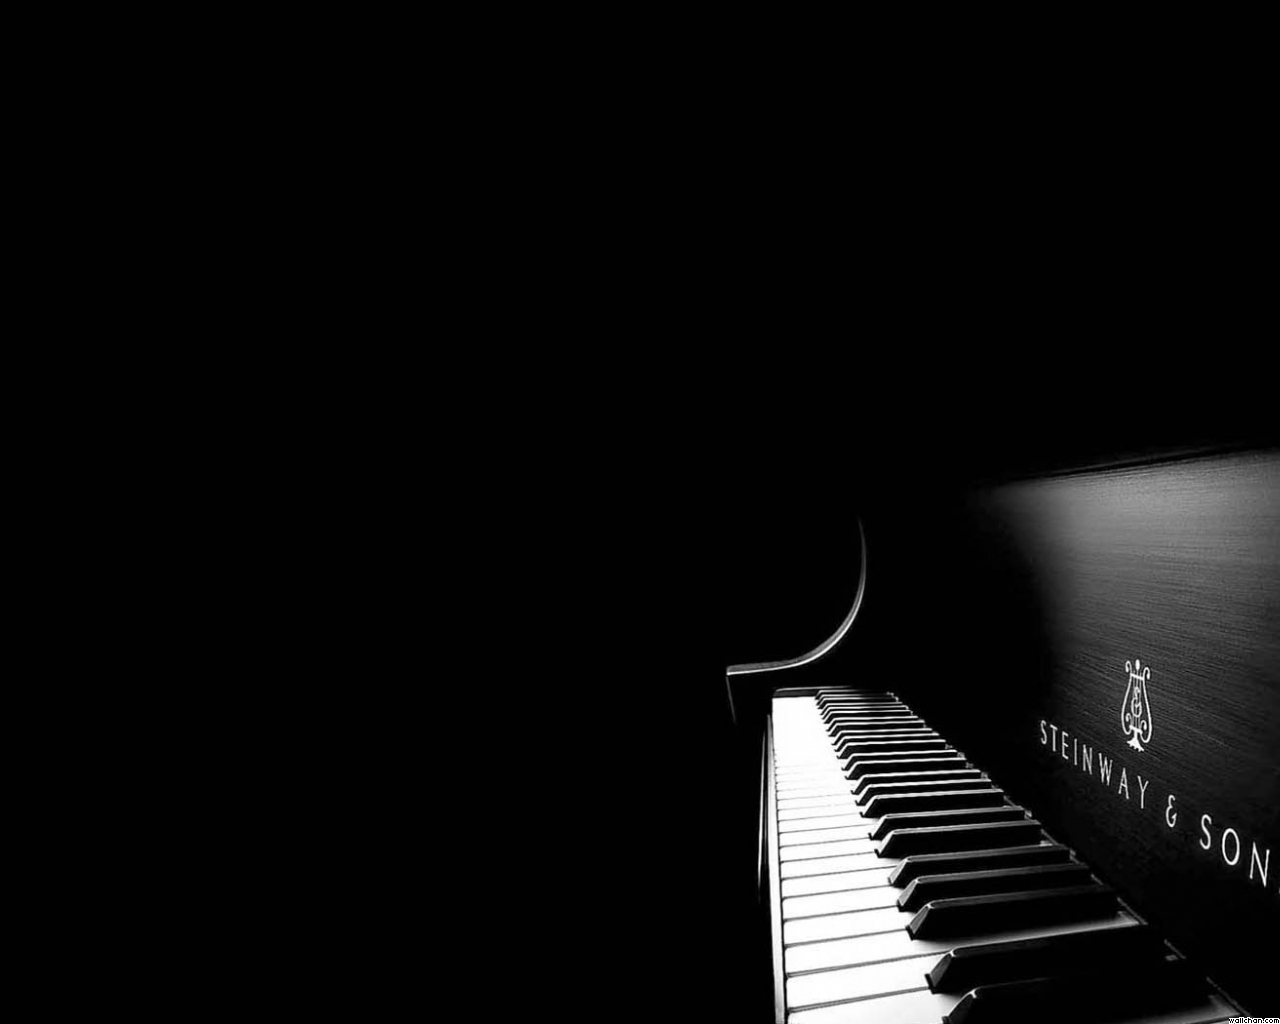 Piano Music Notes Wallpaper 8006 Hd Wallpapers in Music   Imagesci 1280x1024